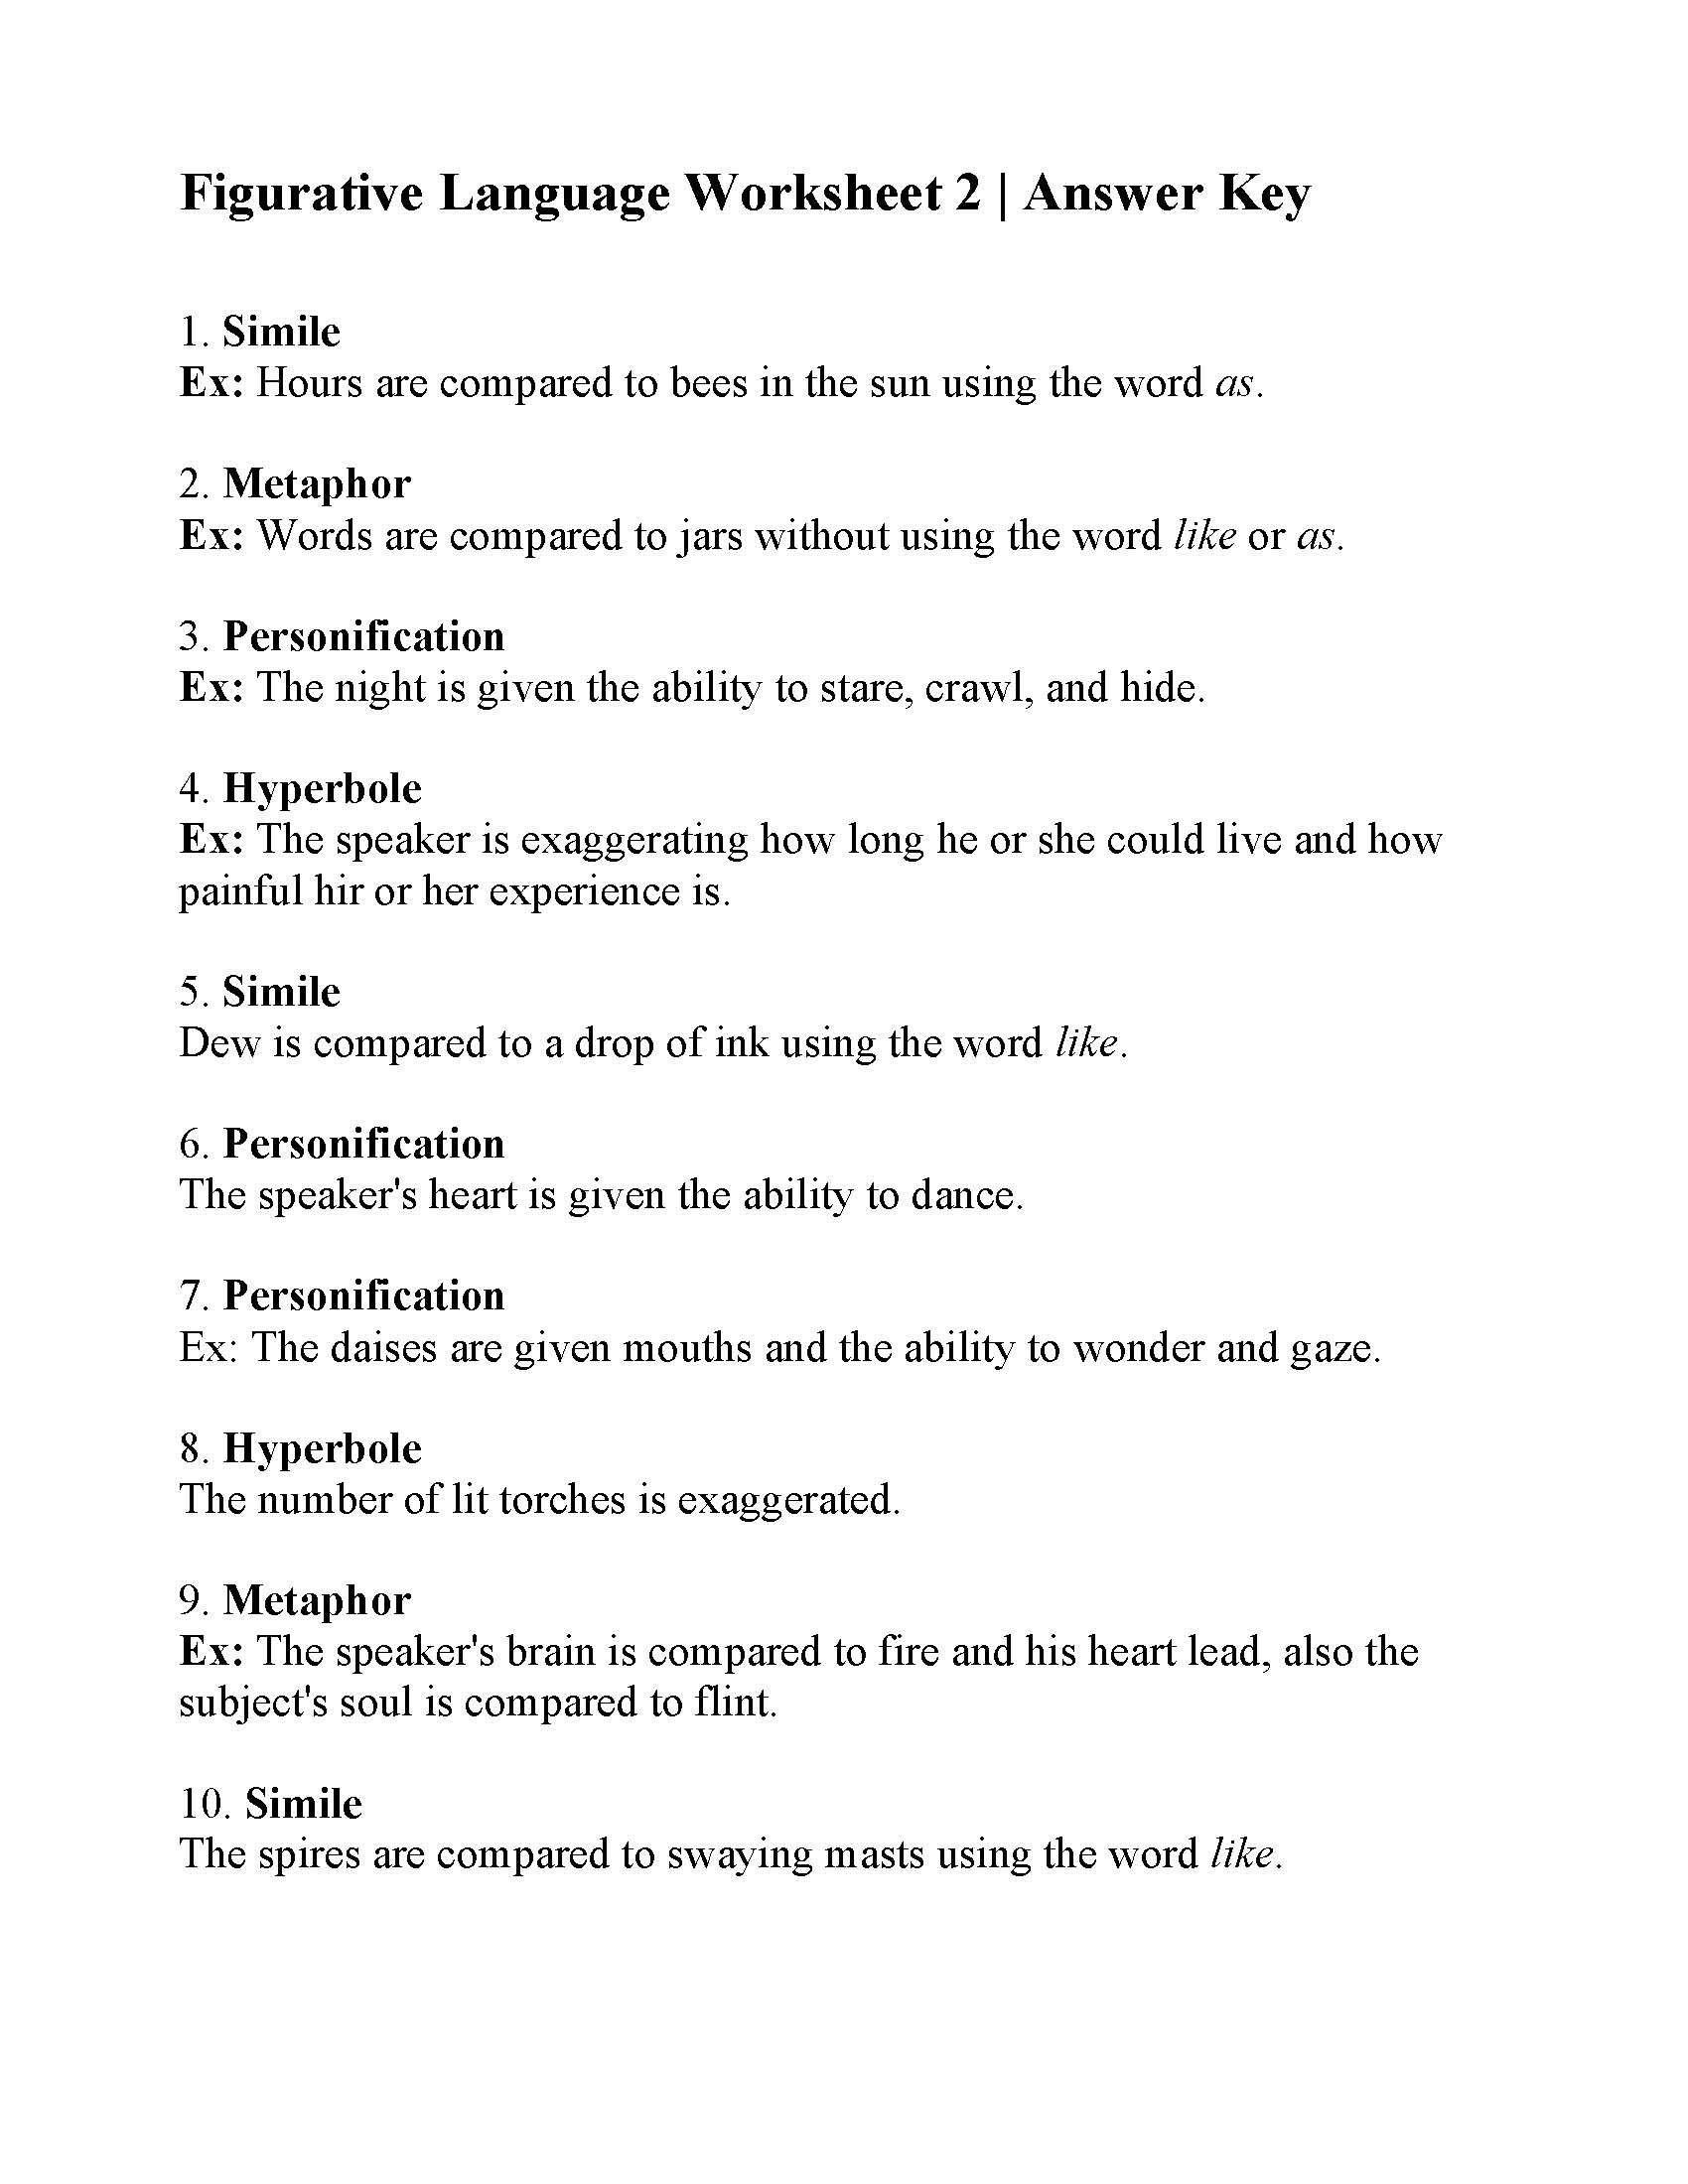 Correlative Conjunctions Worksheets with Answers This is the Answer Key for the Figurative Language Worksheet